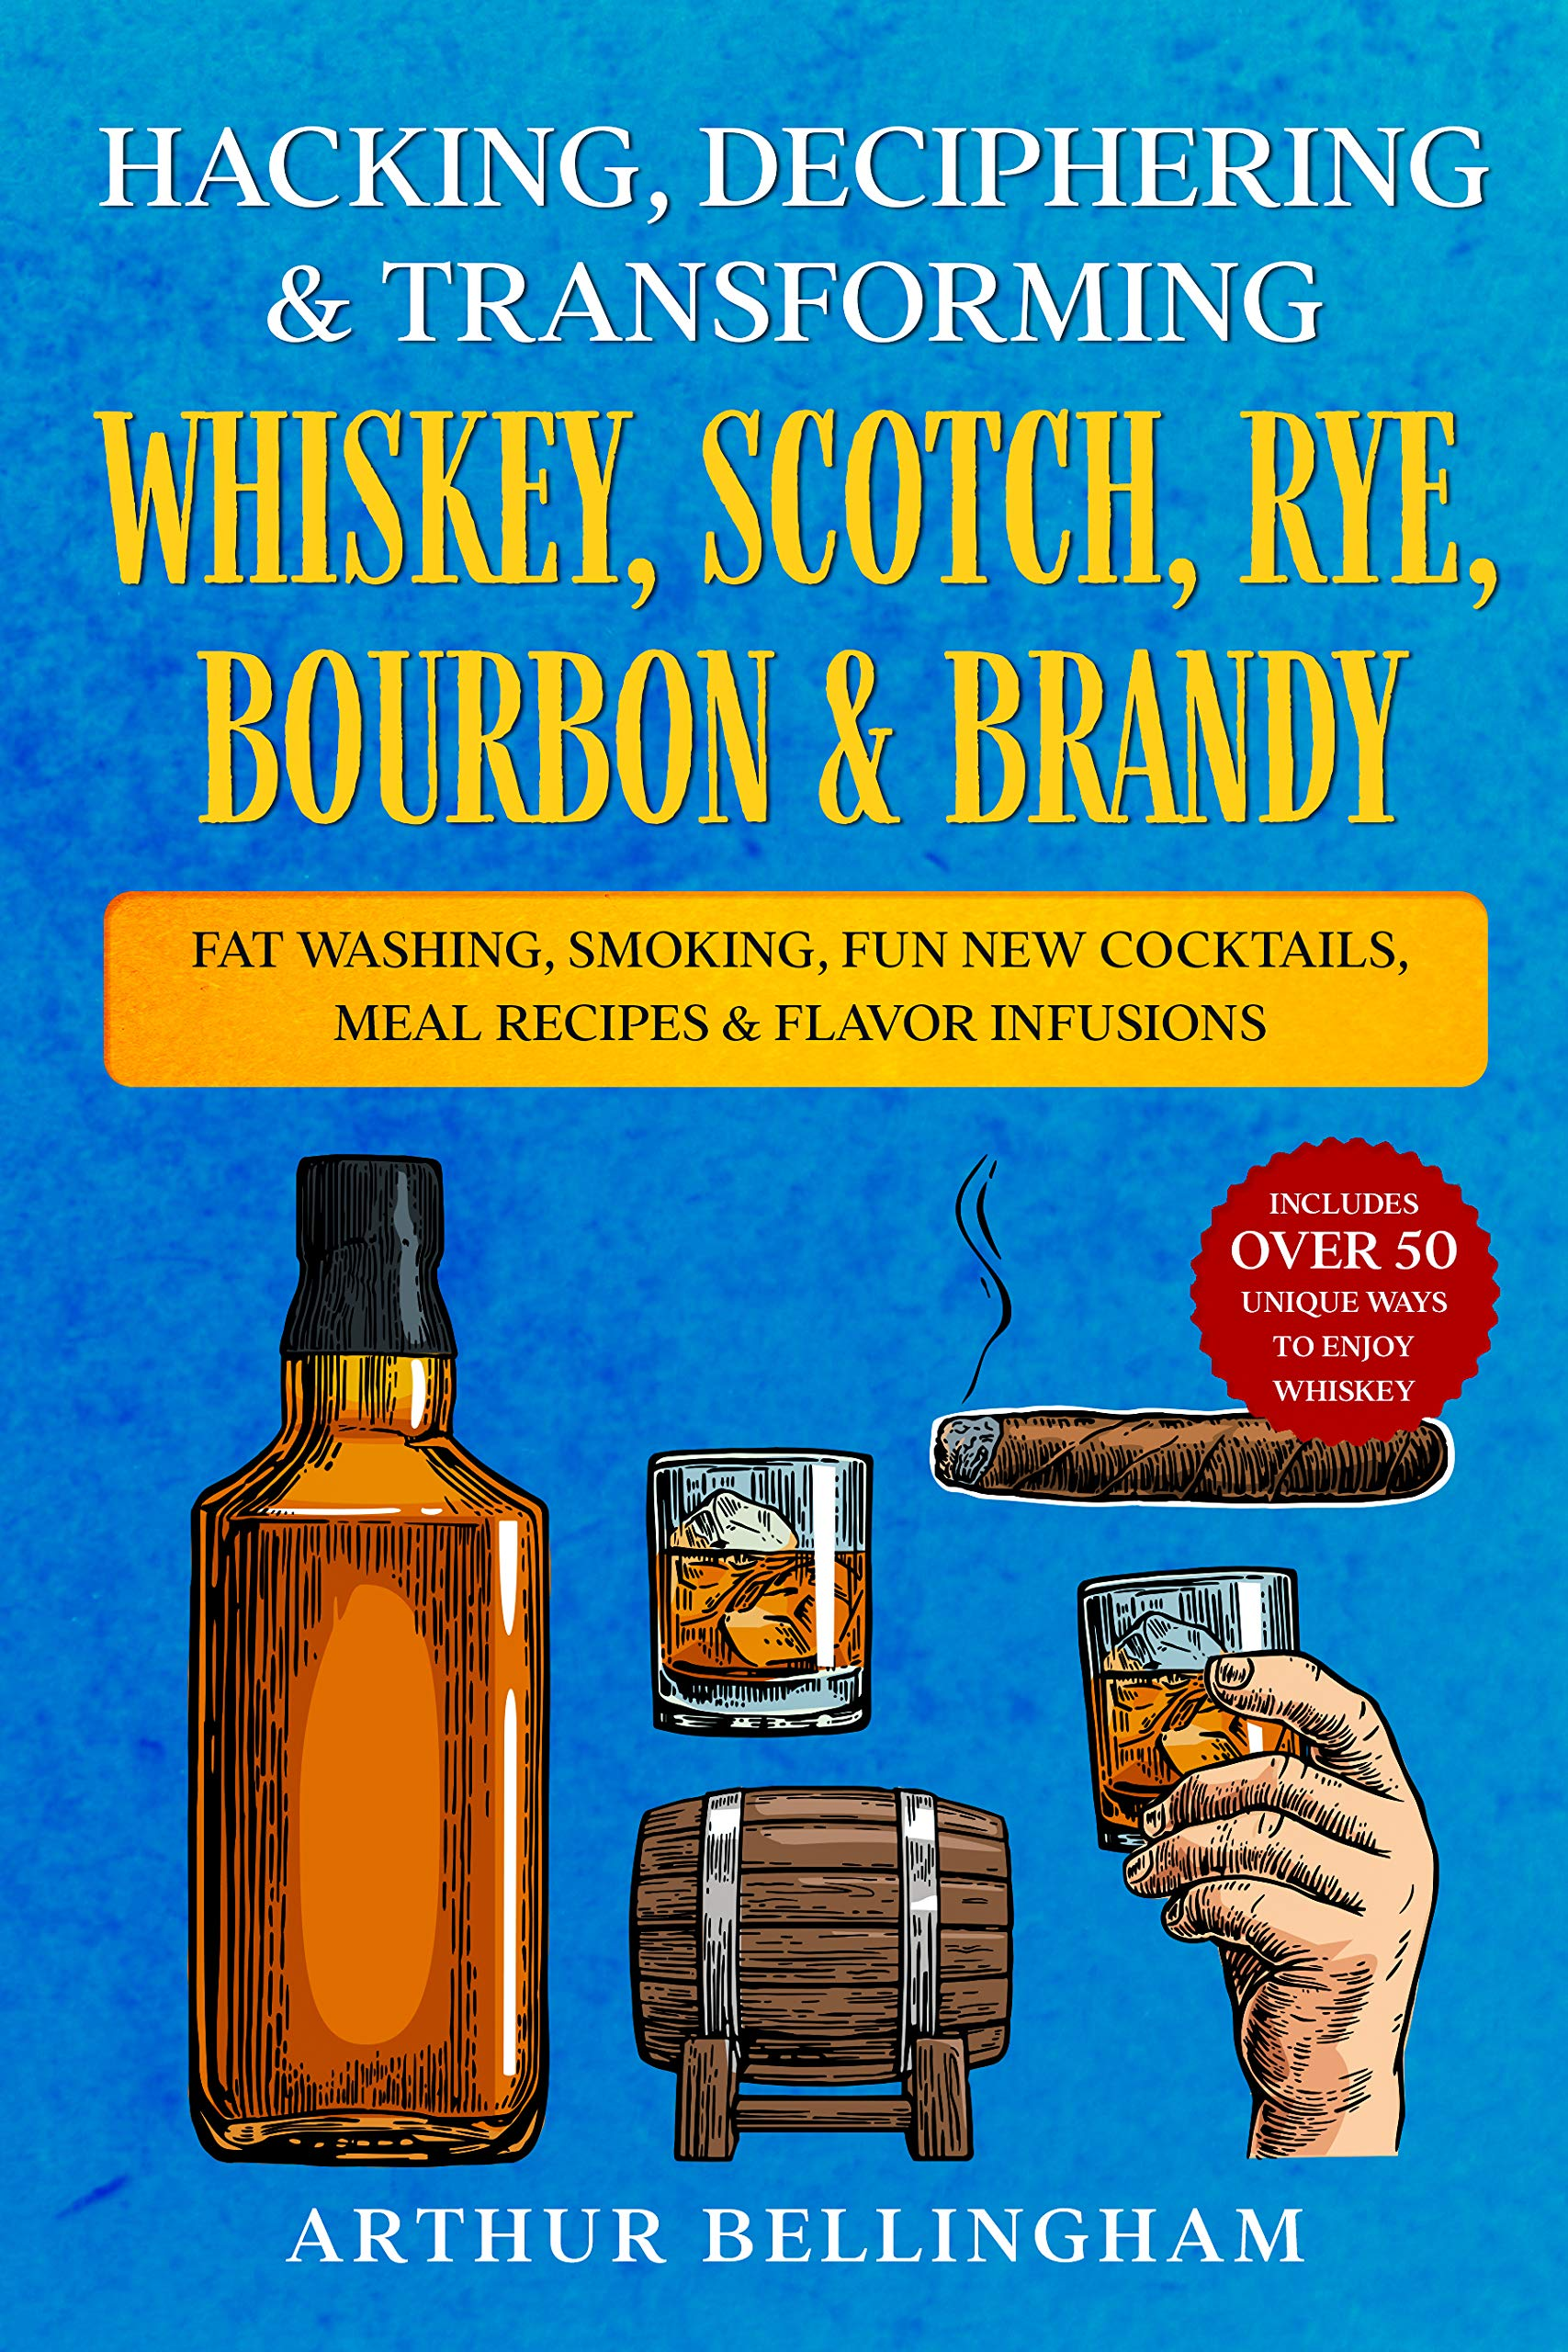 Hacking, Deciphering & Transforming Whiskey, Scotch, Rye, Bourbon & Brandy: Fat Washing, Smoking, Fun New Cocktails, Meal Recipes & Flavor Infusions - Includes over 50 Unique ways to Enjoy Whiskey